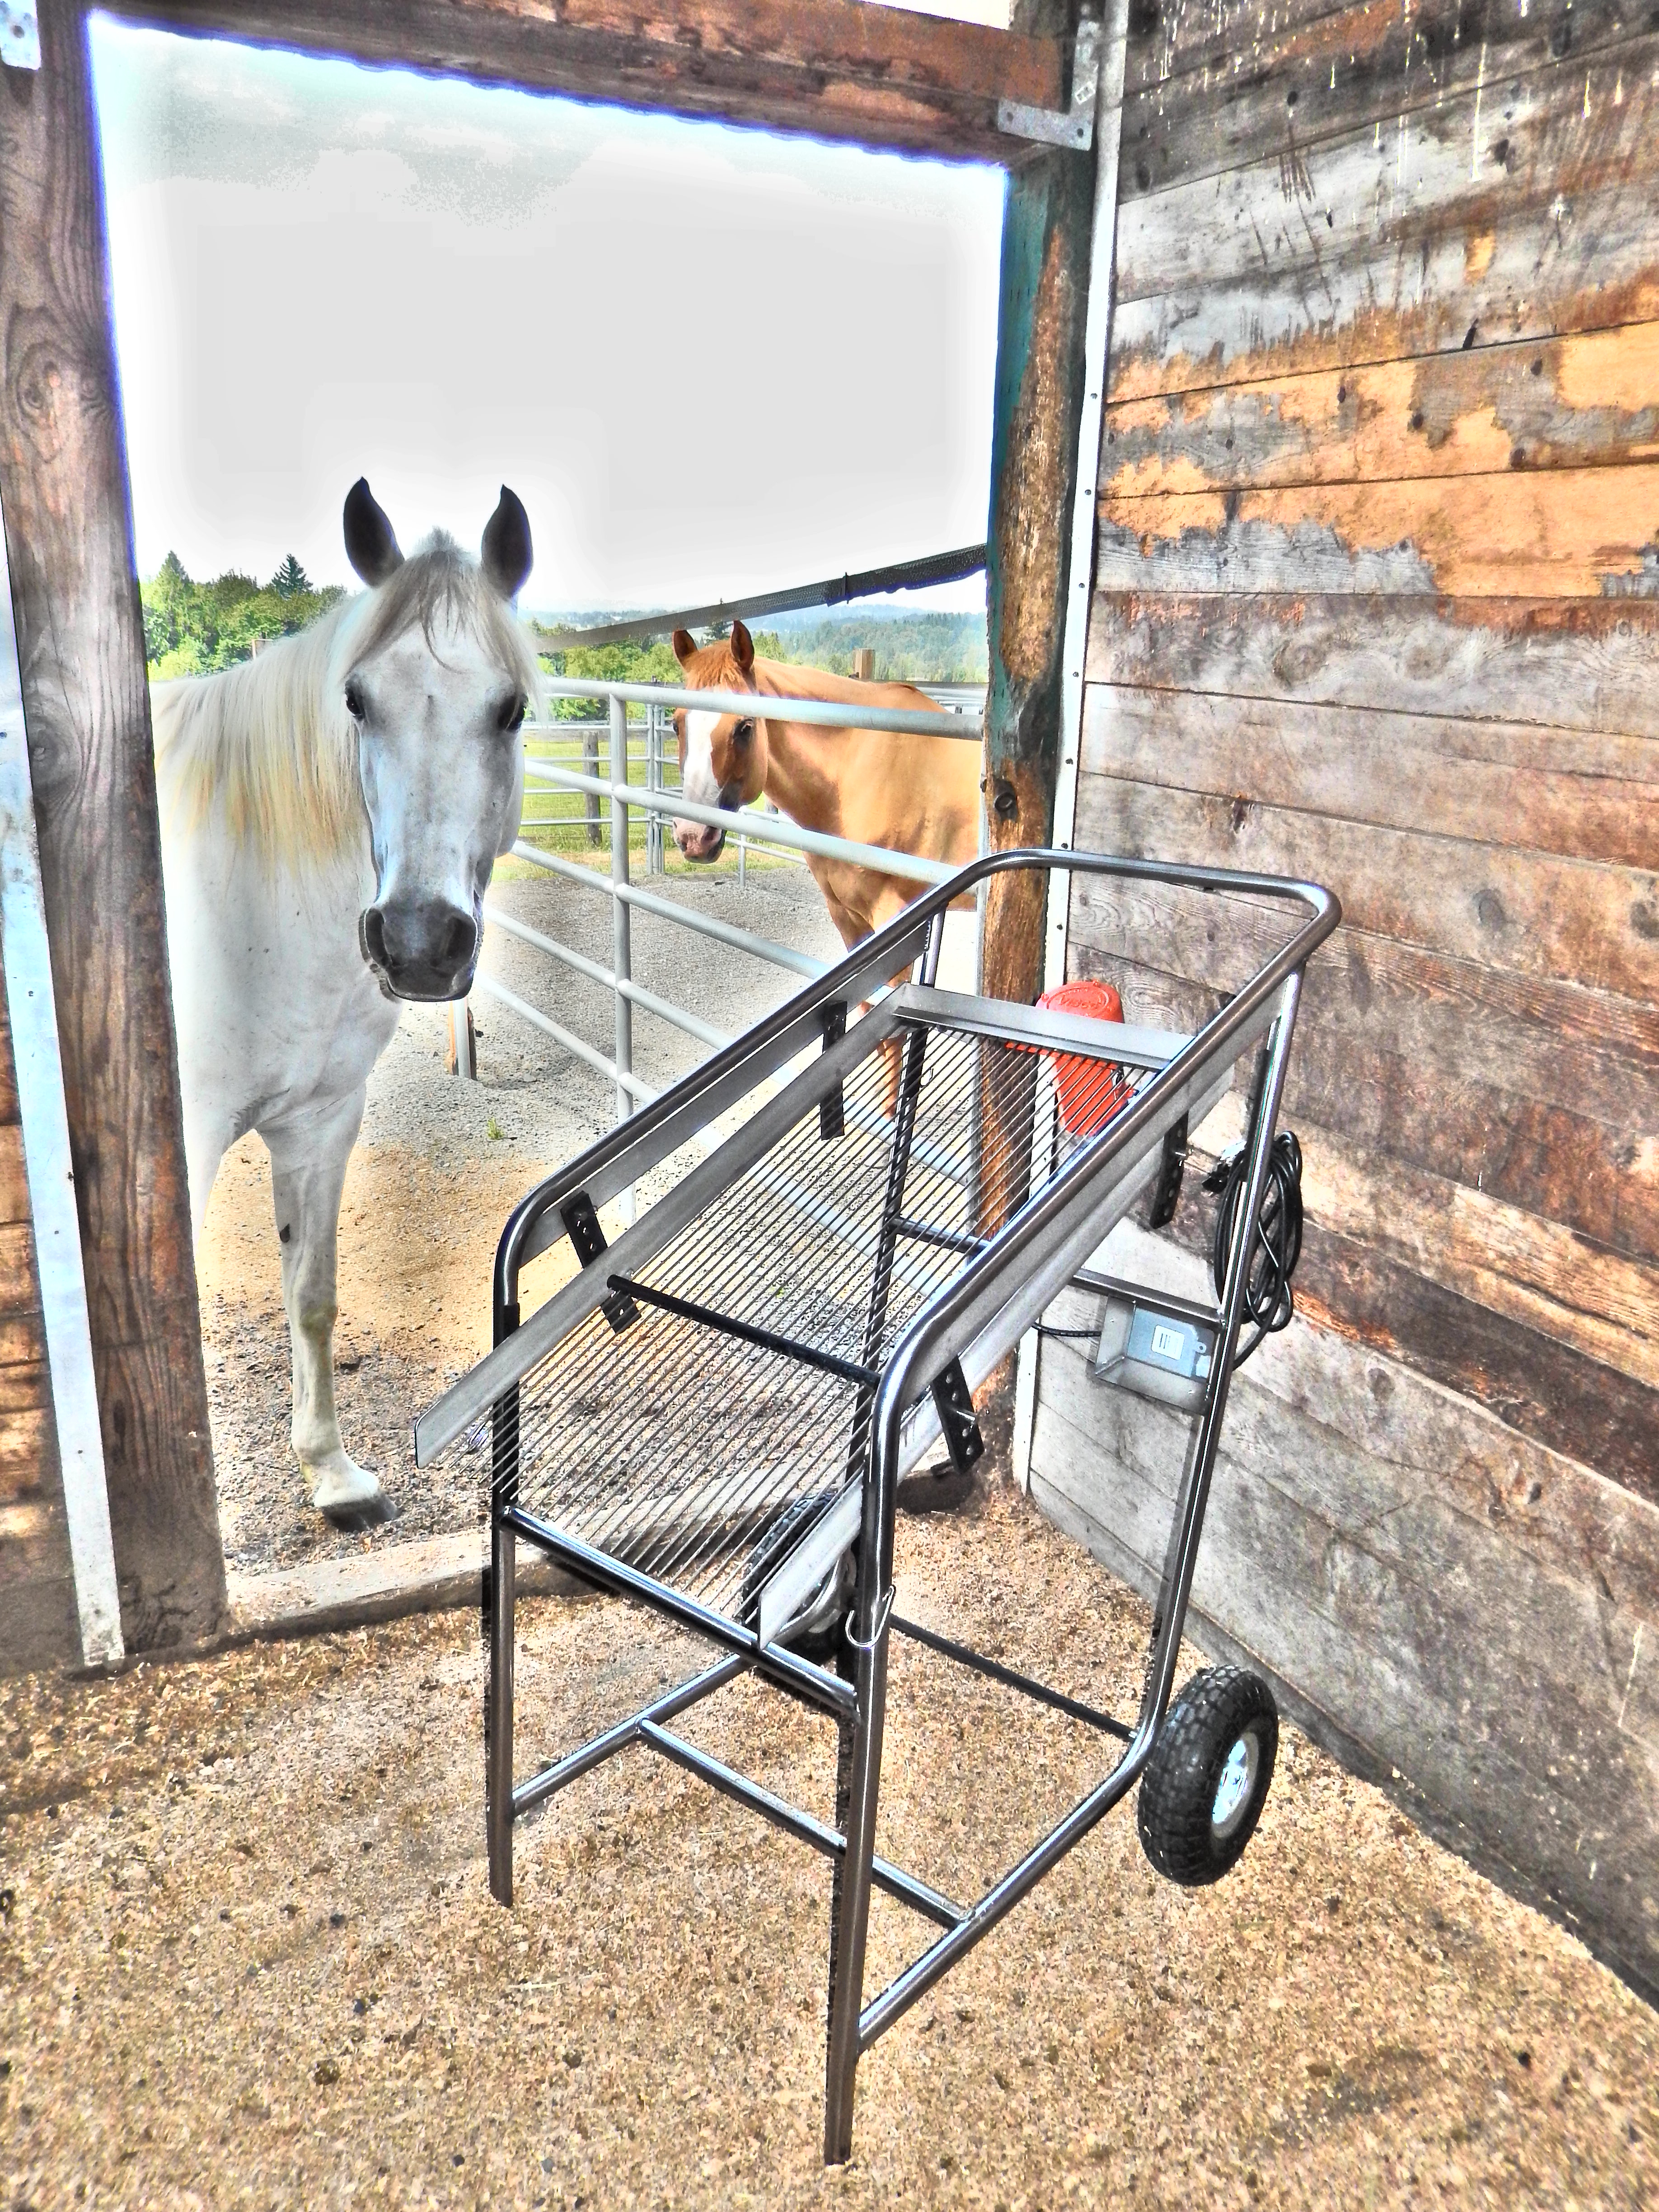 Horse stall cleaning machine, horse stall bedding sifter